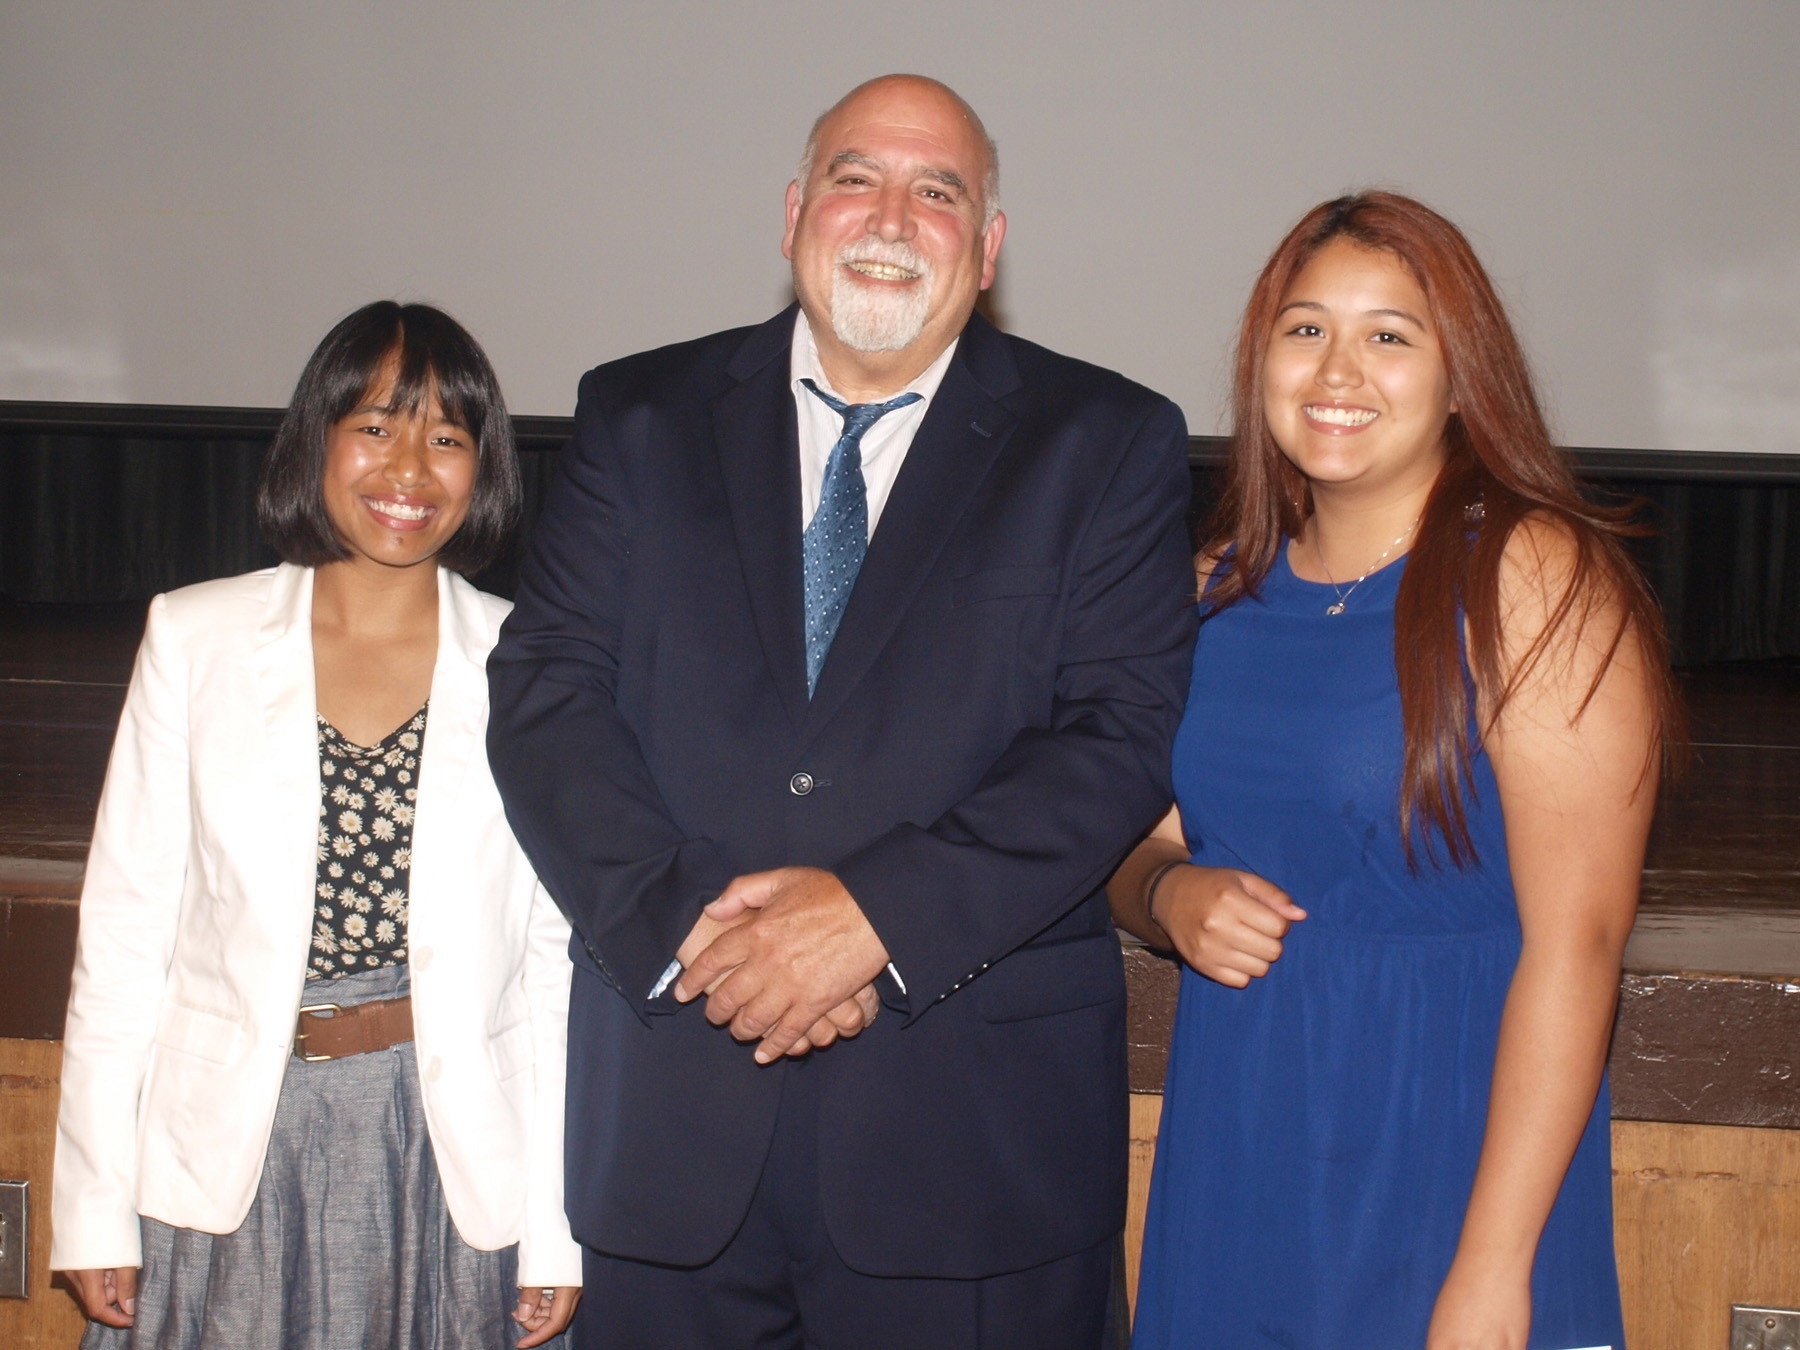 NEW YORK STATE NATIONAL SCIENCE HONOR SOCIETY: Freeport High School Science research teacher Edwin Irwin presented science fair first-place winner (left) Lynda L. Tinglin and third-place winner Stephanie Rodriguez at the 2014 science awards and New York State Science Honor Society induction. Second-place winner Alanna Gordon was not present at the event.